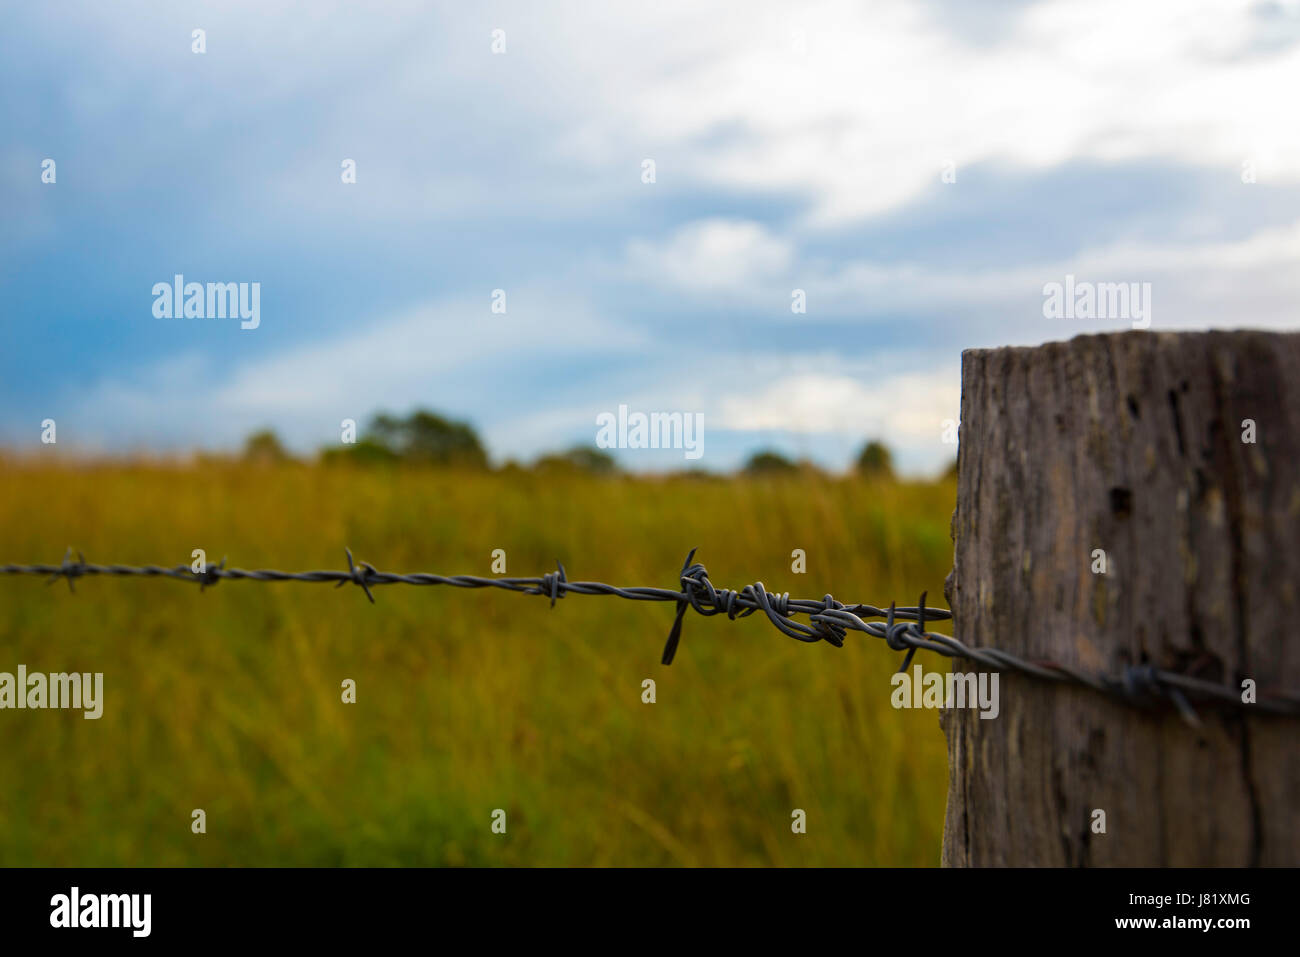 An old timber fence post and barbed wire strand - Stock Image